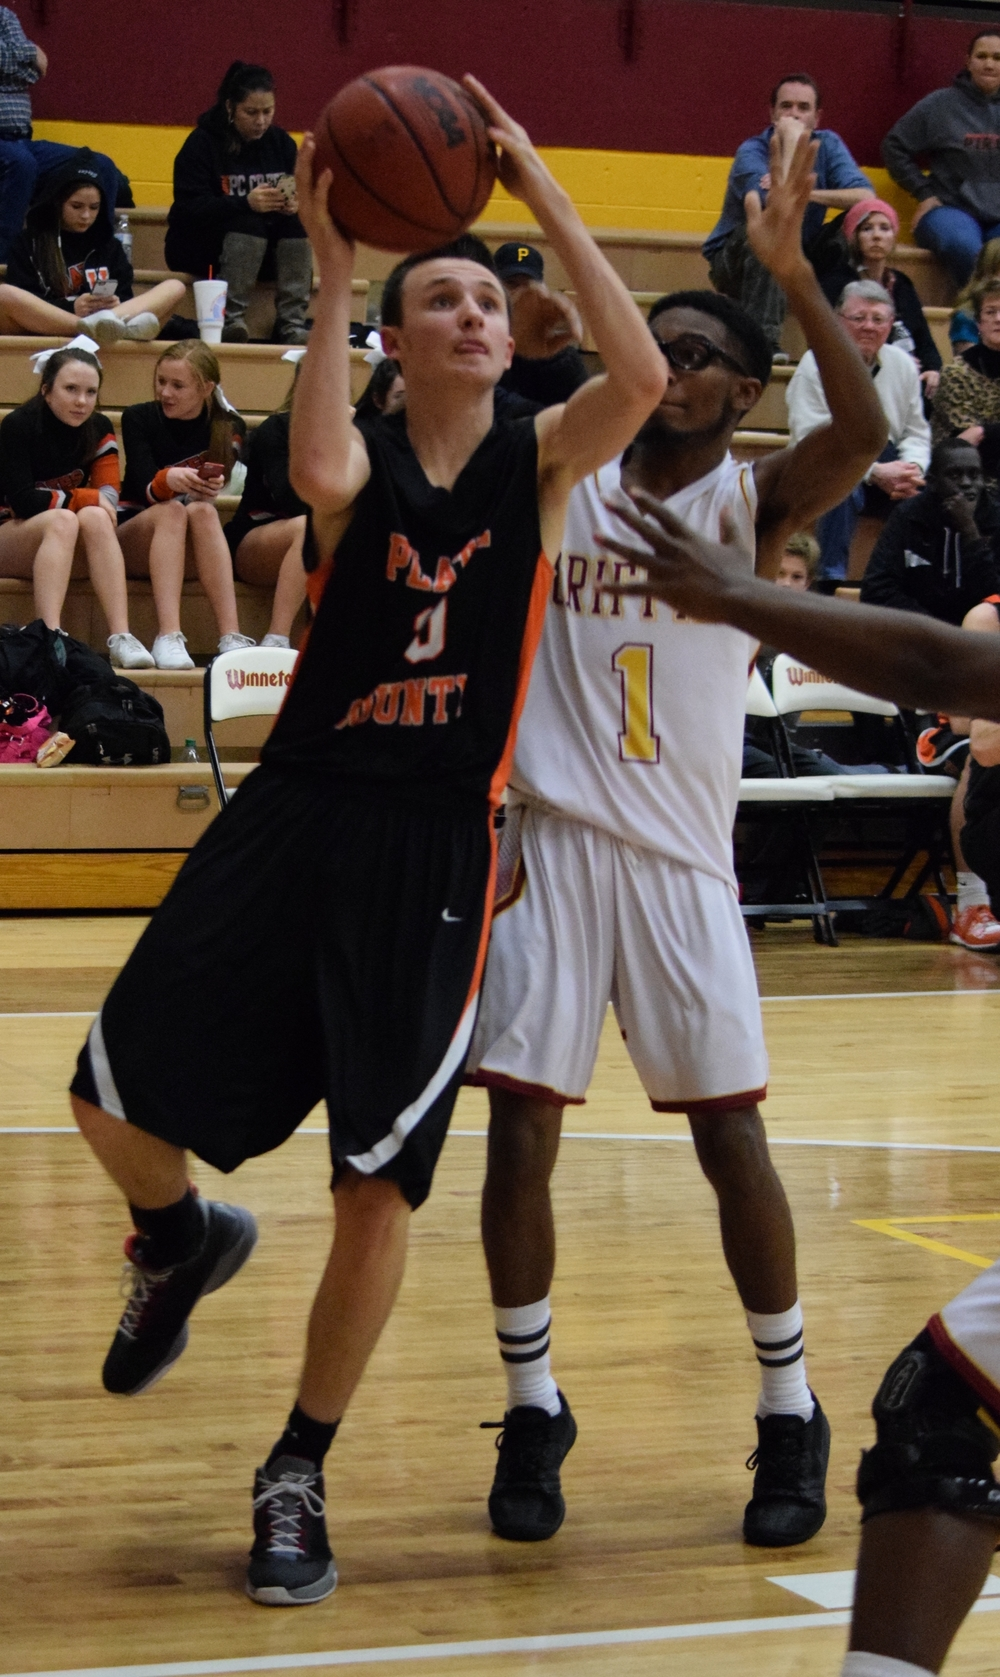 BRYCE MERENESS/Citizen photo Platte County junior Tanner Newberry, left, takes a shot against Winnetonka on Friday, Feb. 26 at Winnetonka High School in Kansas City, Mo.